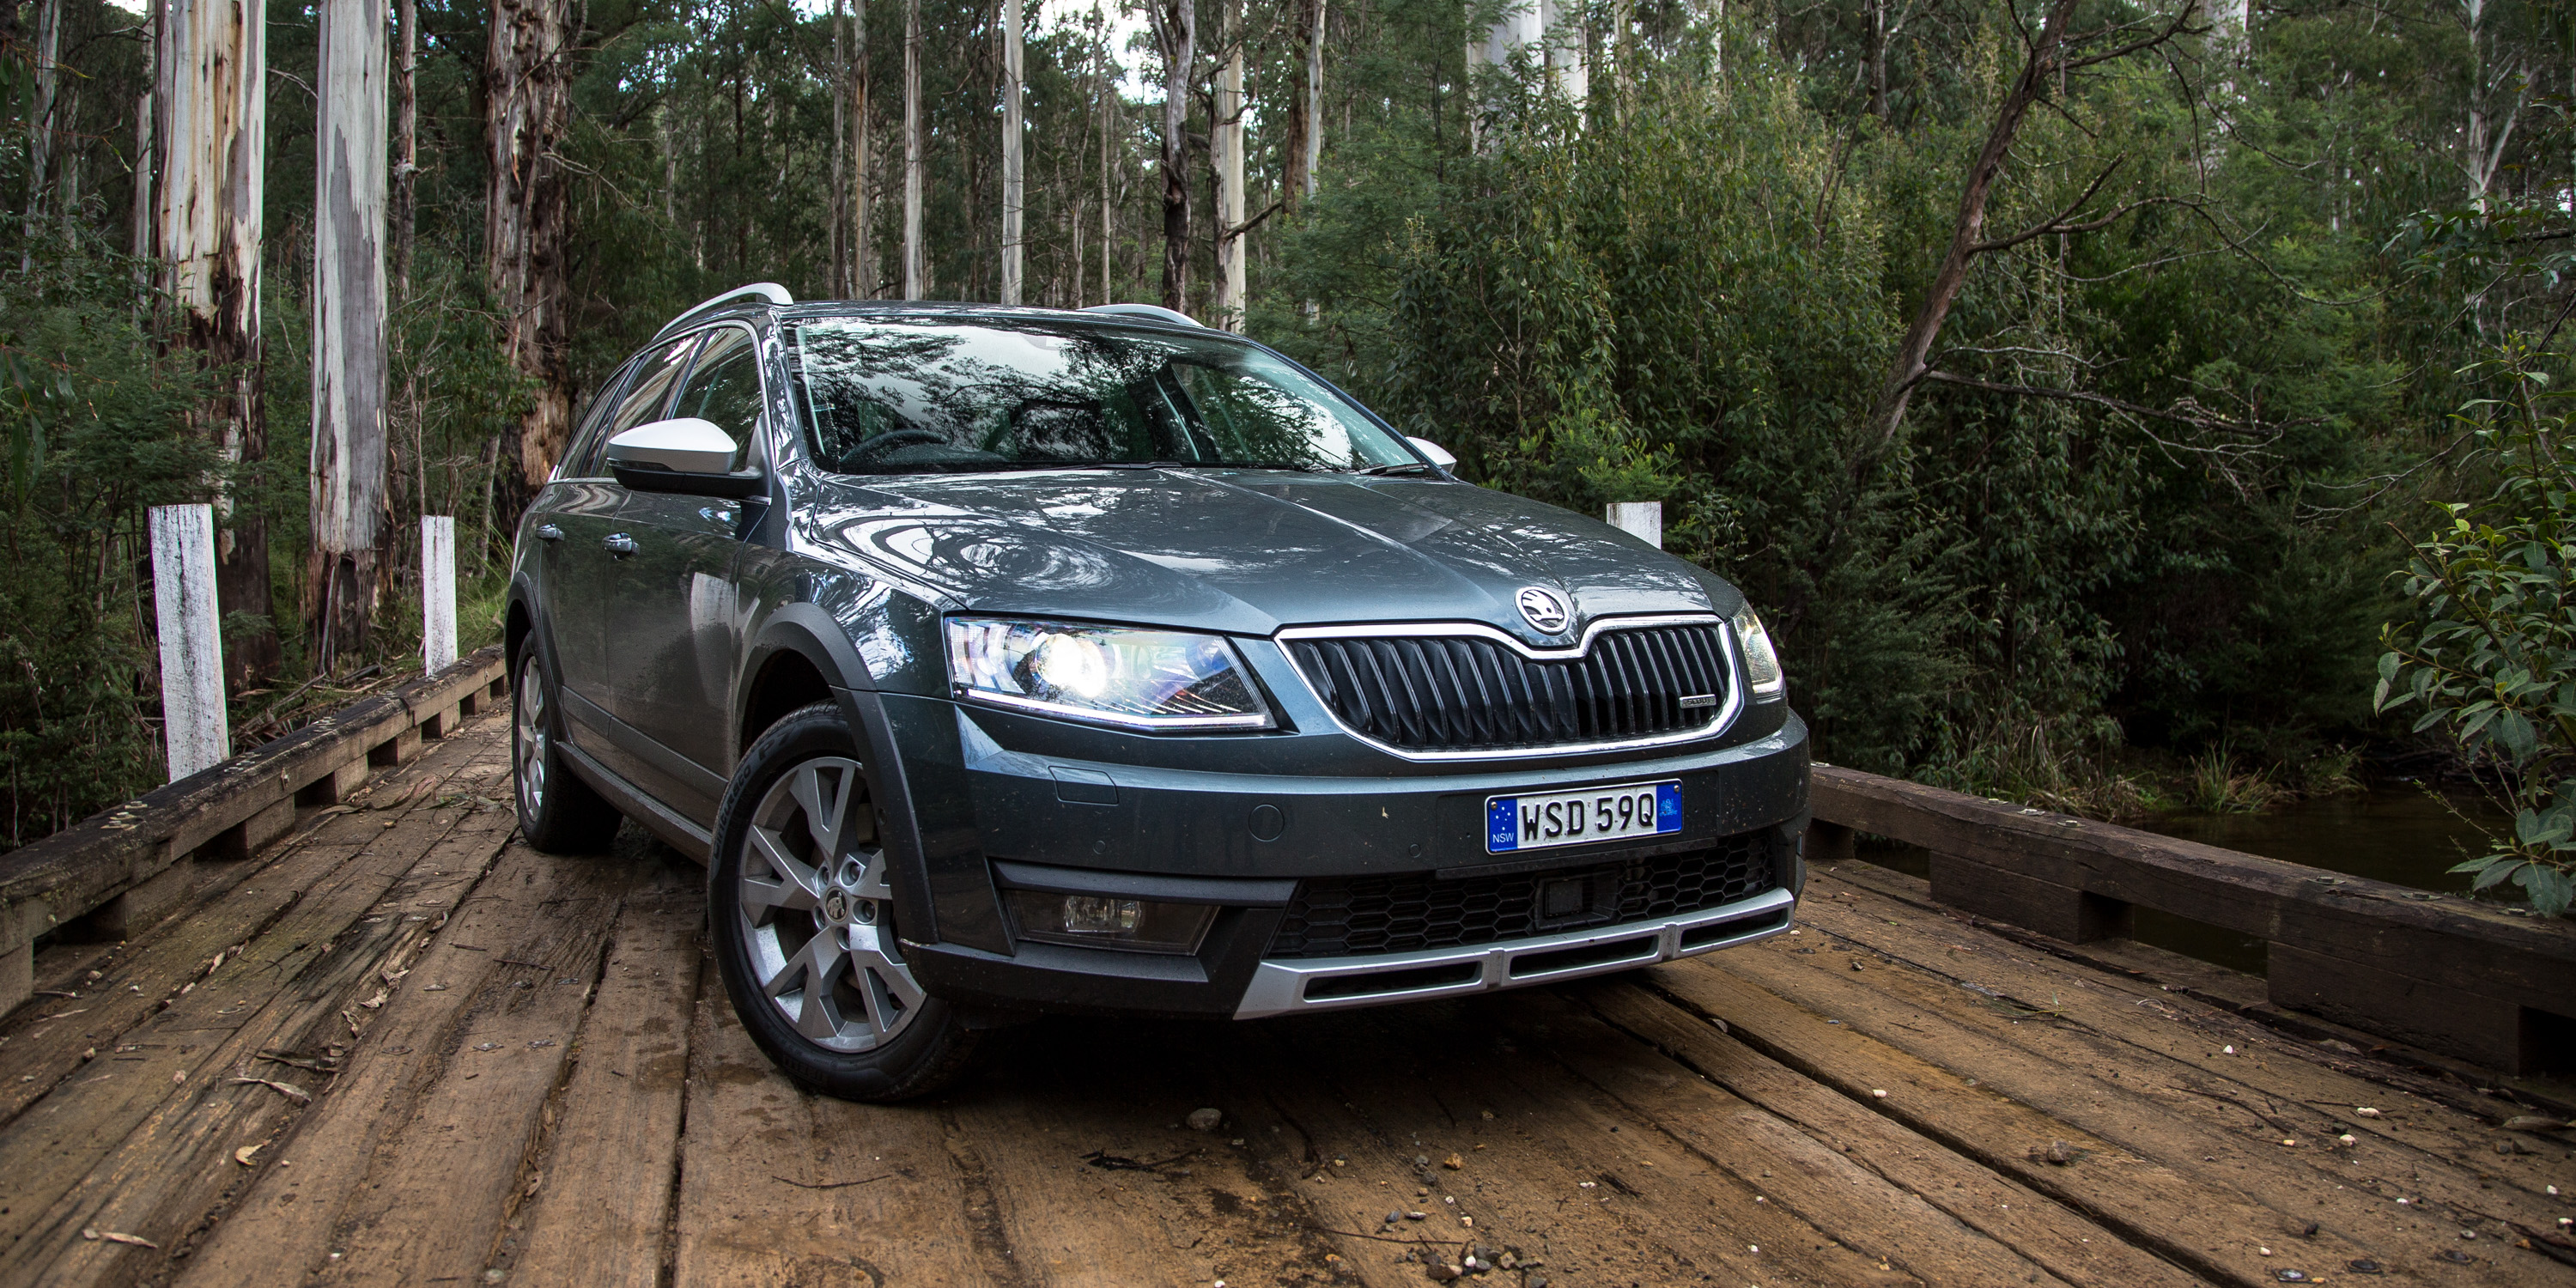 2016 Skoda Octavia Scout Preview (Photo 21 of 23)